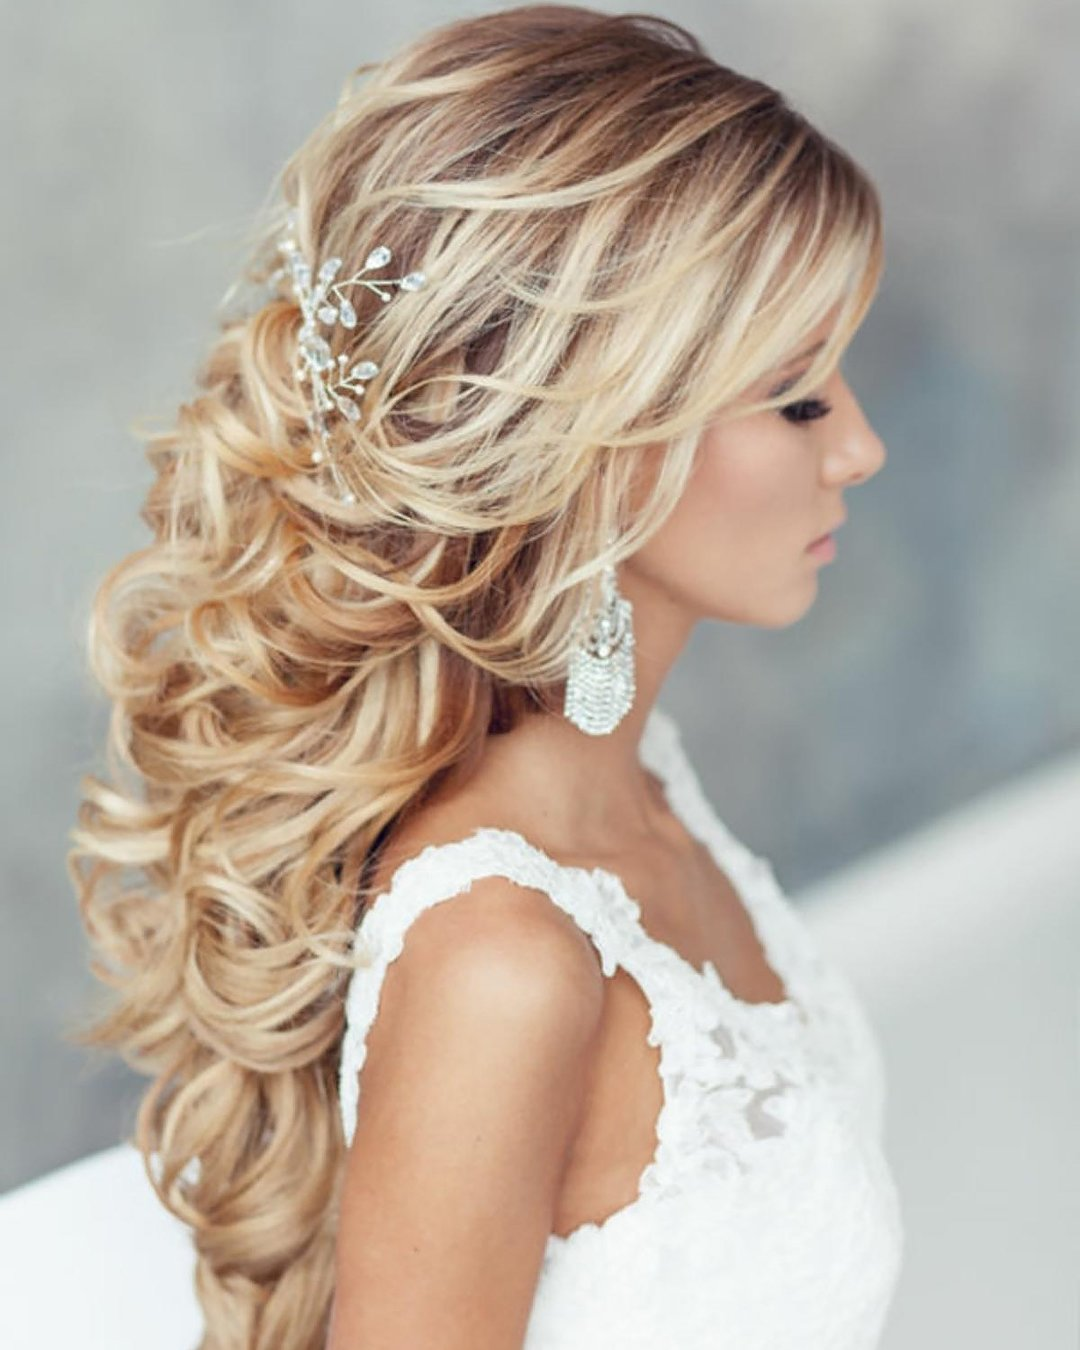 half up half down wedding hairstyles textured beach curls on blonde hair elstile